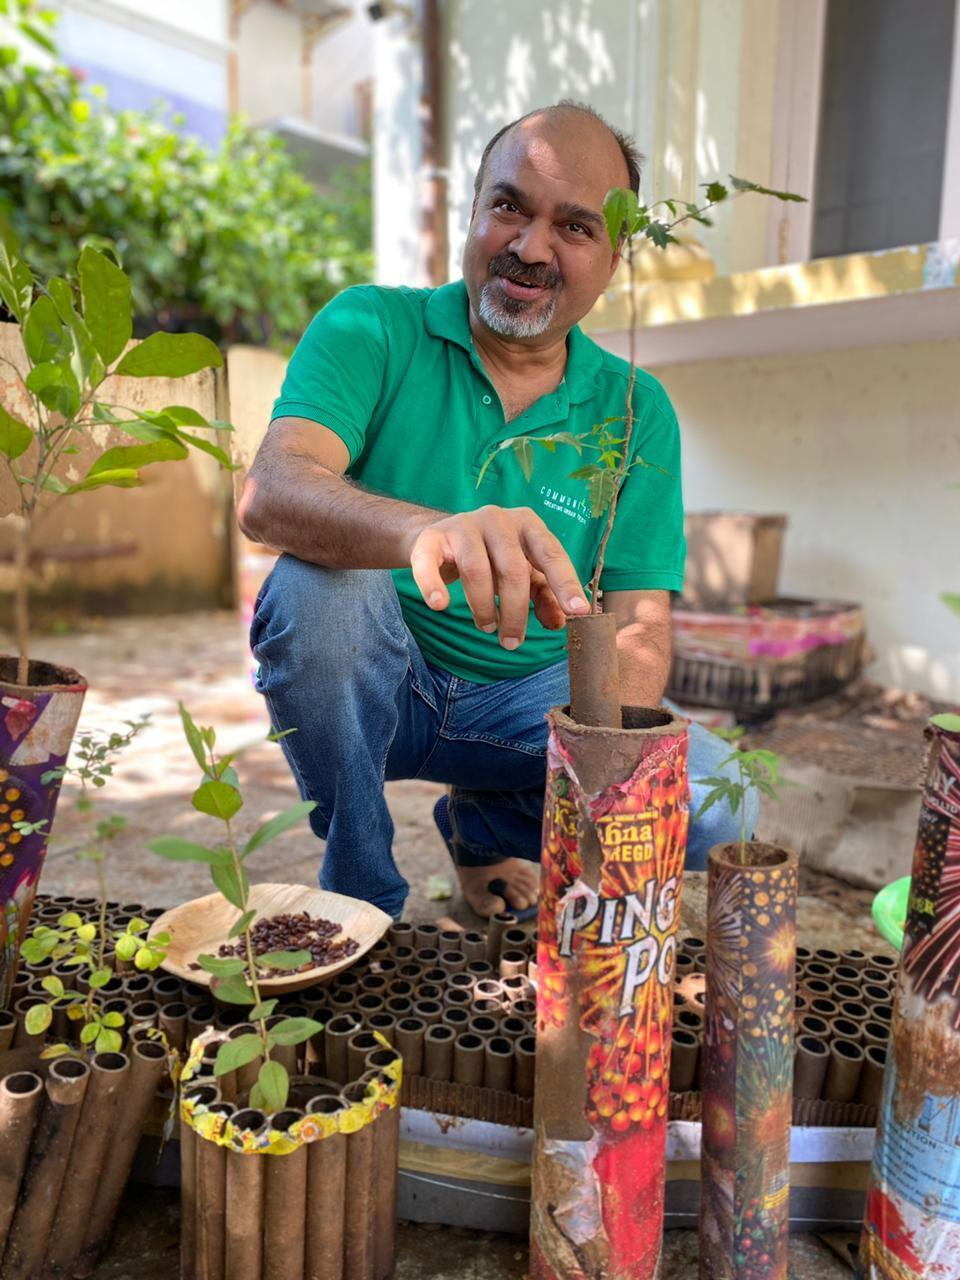 Chennai Man Collects Empty Firecracker Cases, Turns Them Into Plant Holders